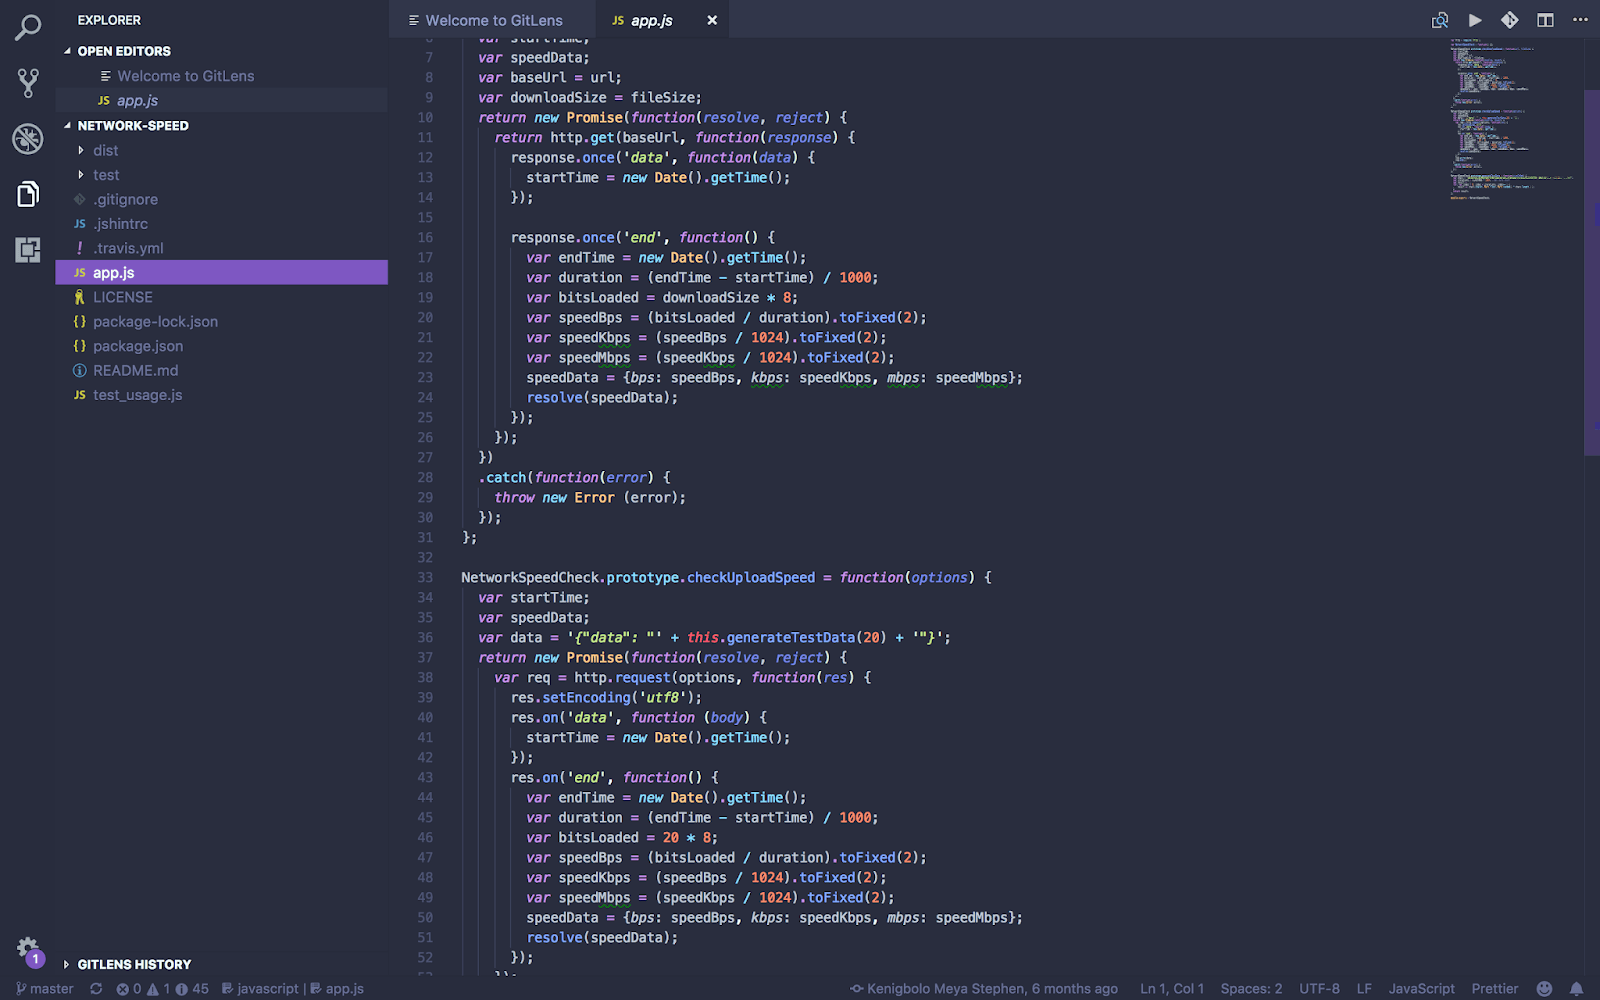 vs code Material Palenight